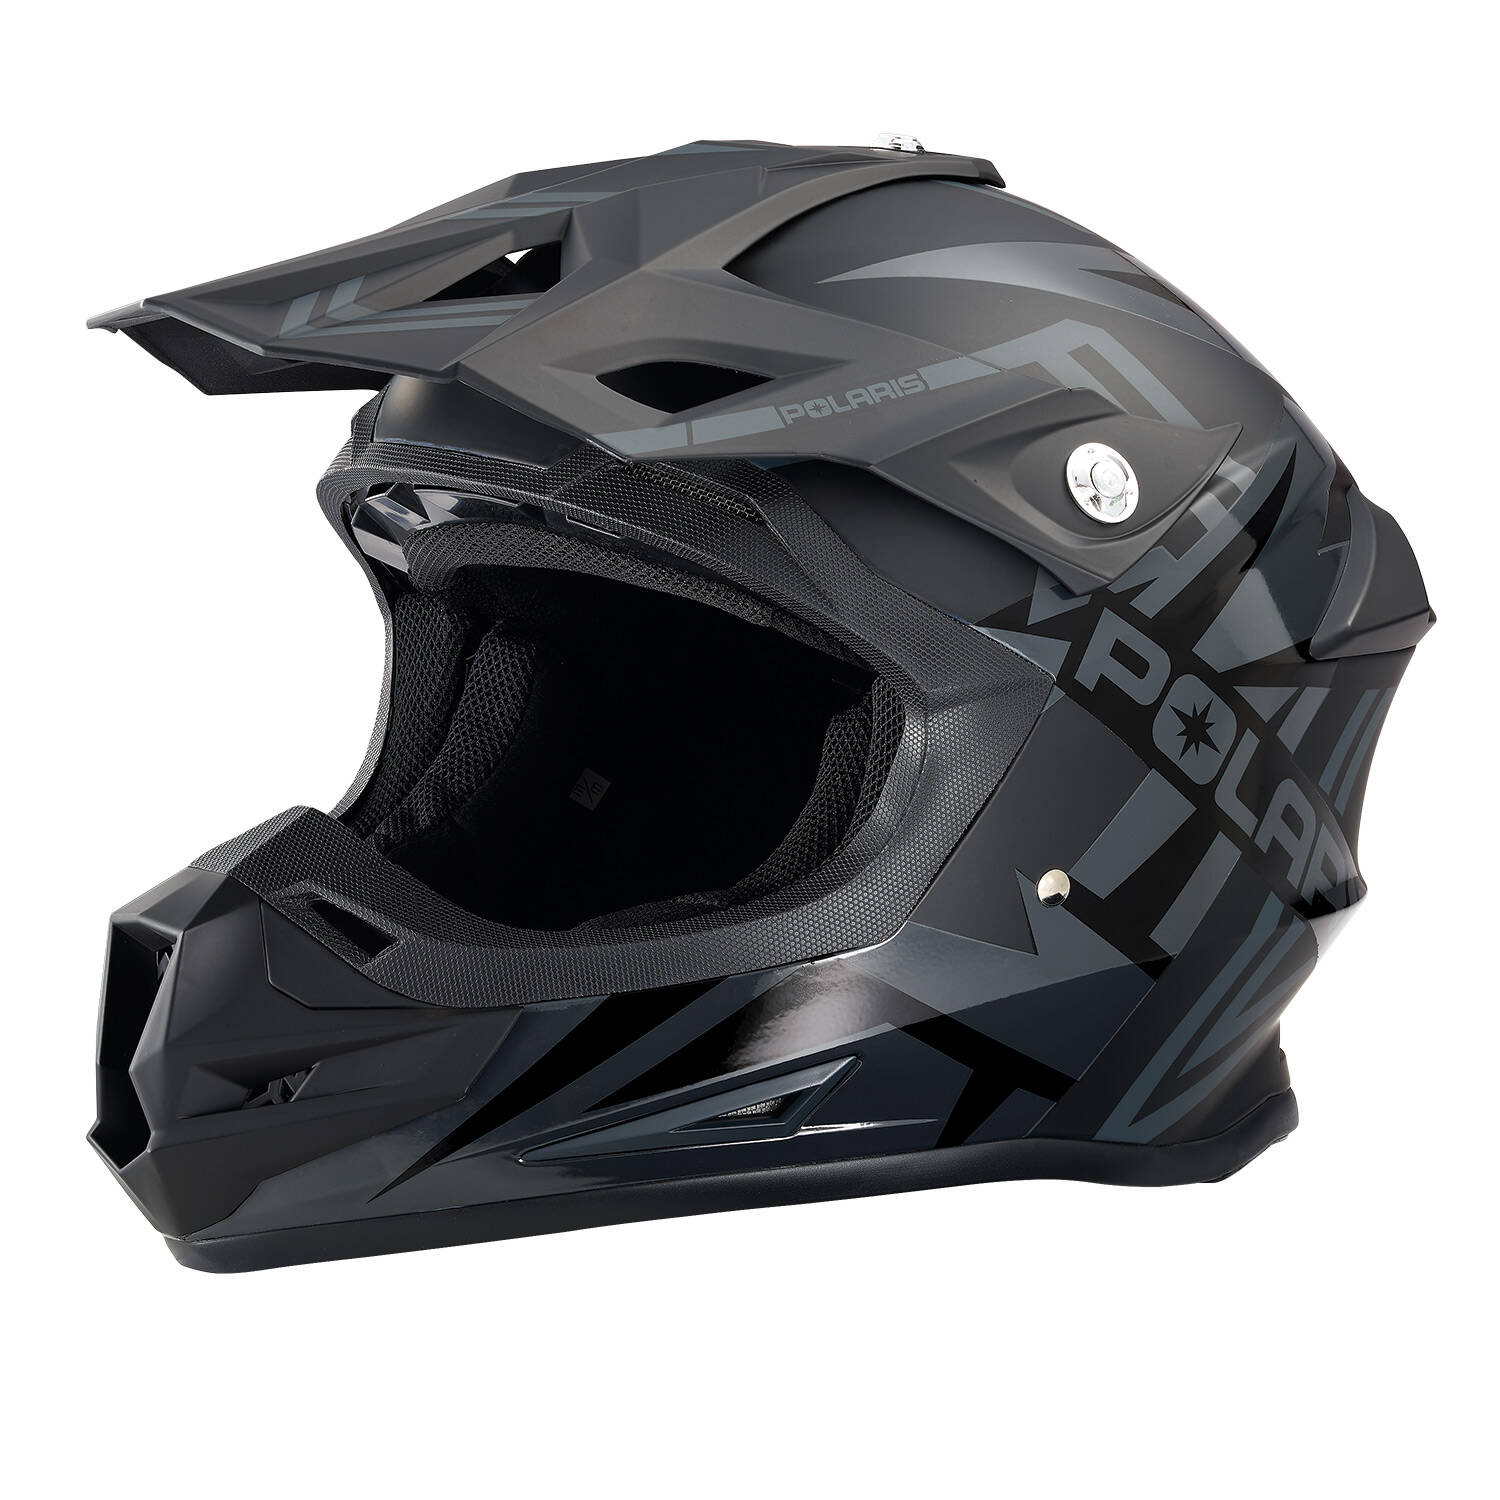 Force Helmet - Black Matte